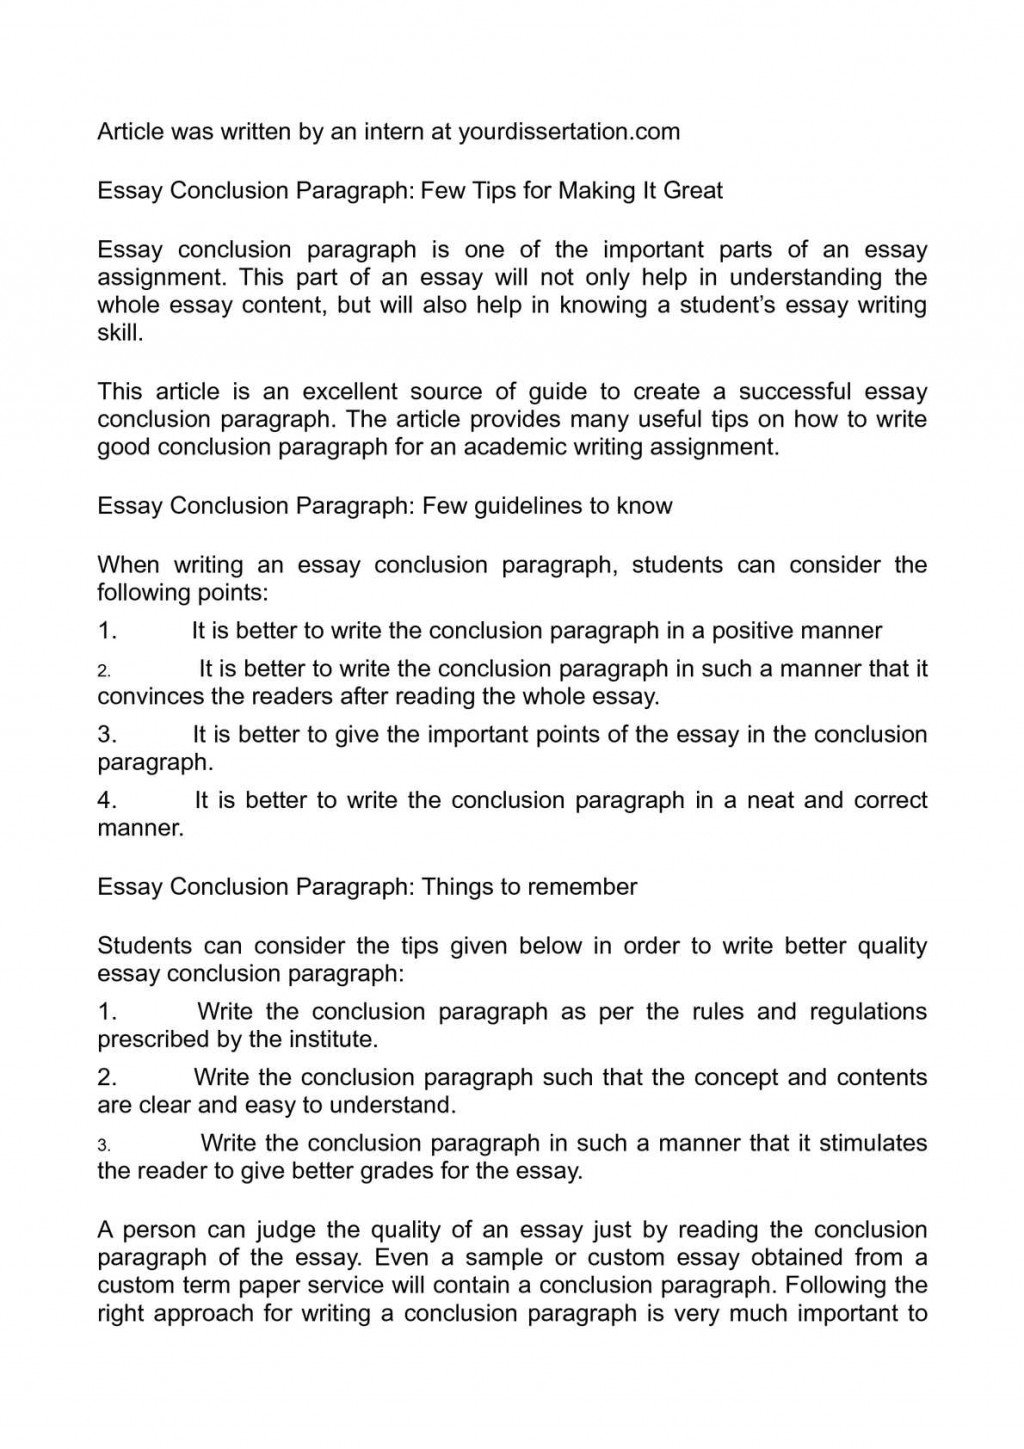 004 Essay Example P1 Conclusion Awesome Paragraph Argumentative Abortion Persuasive Large